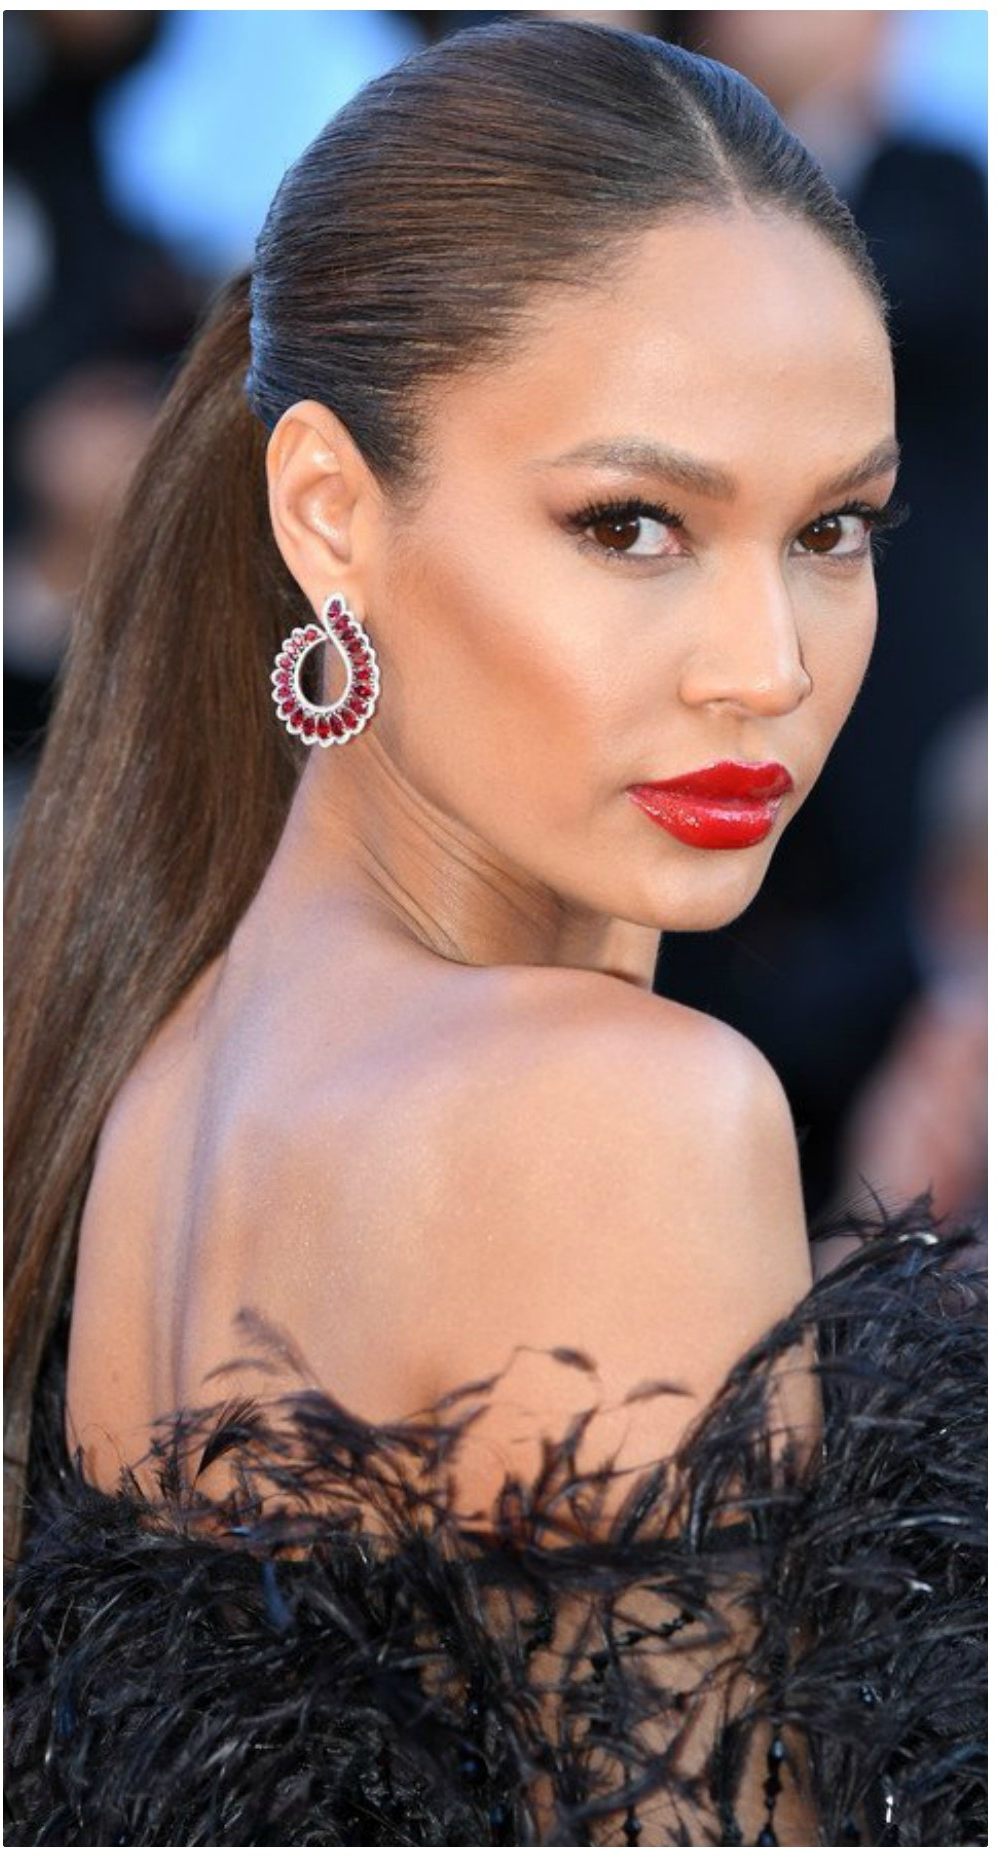 joan-smalls-in-roberto-cavalli-couture-girls-of-the-sun-les-filles-du-soleil-cannes-film-festival-premiere.jpg